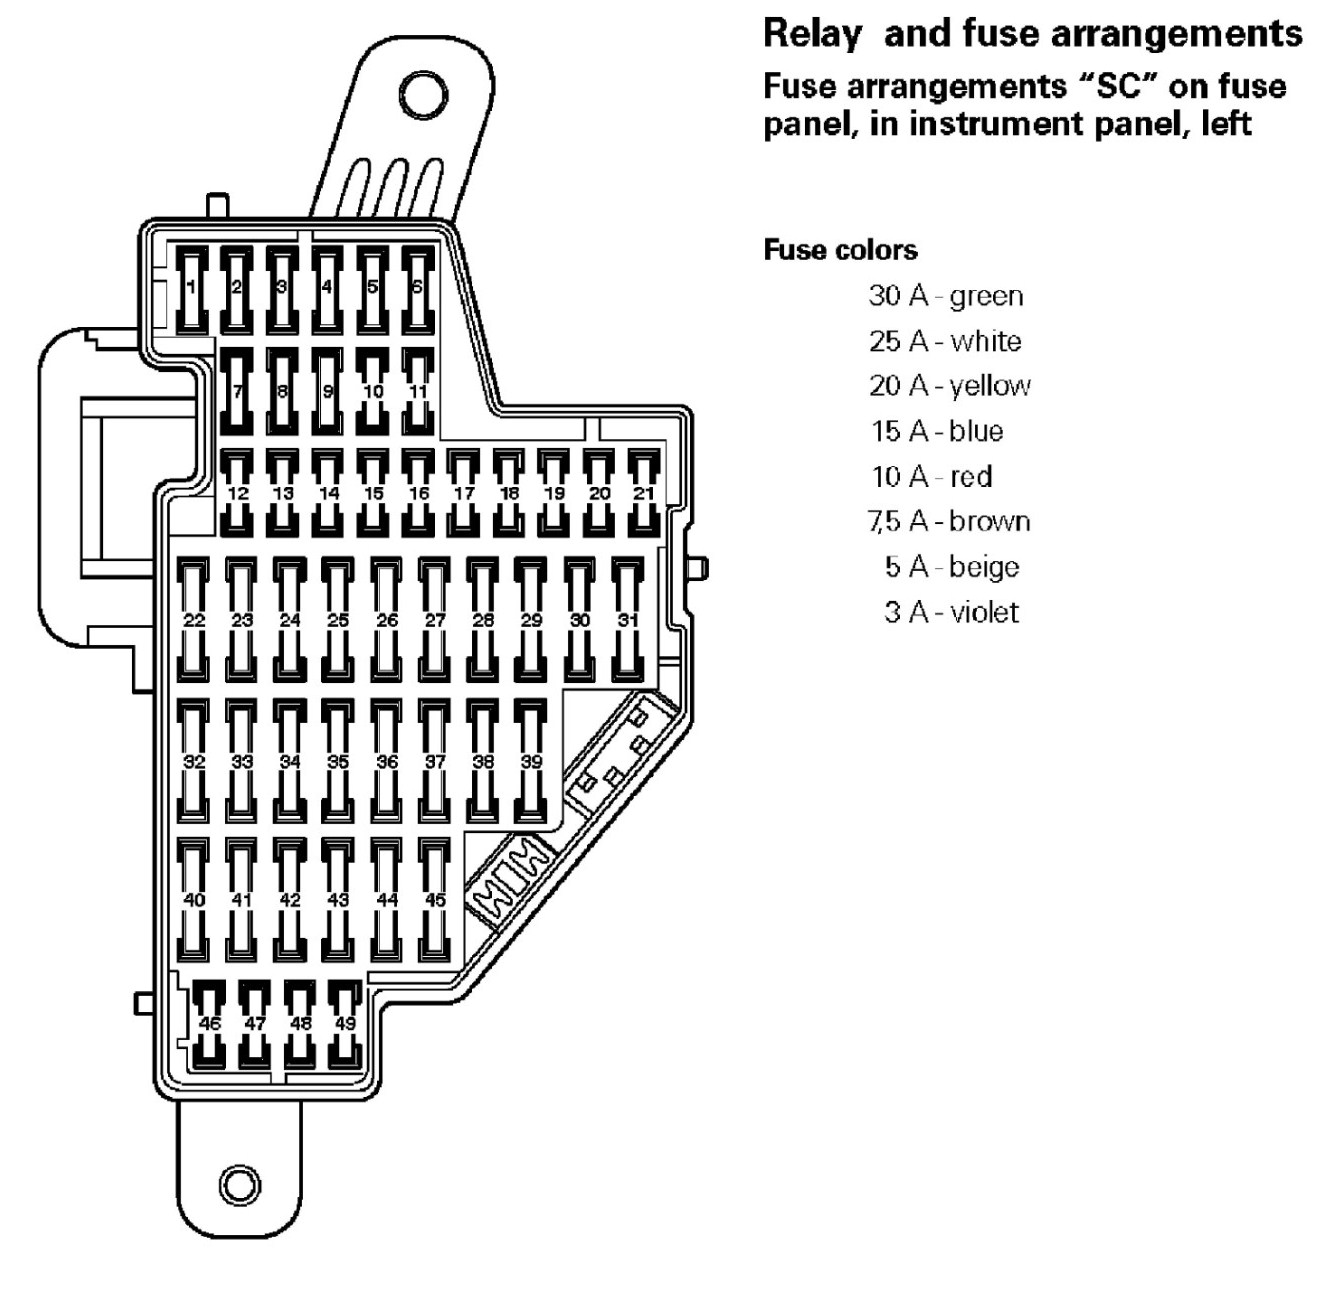 06 Jetta Fuse Diagram Nice Place To Get Wiring 2006 Pt Cruiser Box 2008 Vw Todays Rh 10 6 12 1813weddingbarn Com Volkswagen Tdi